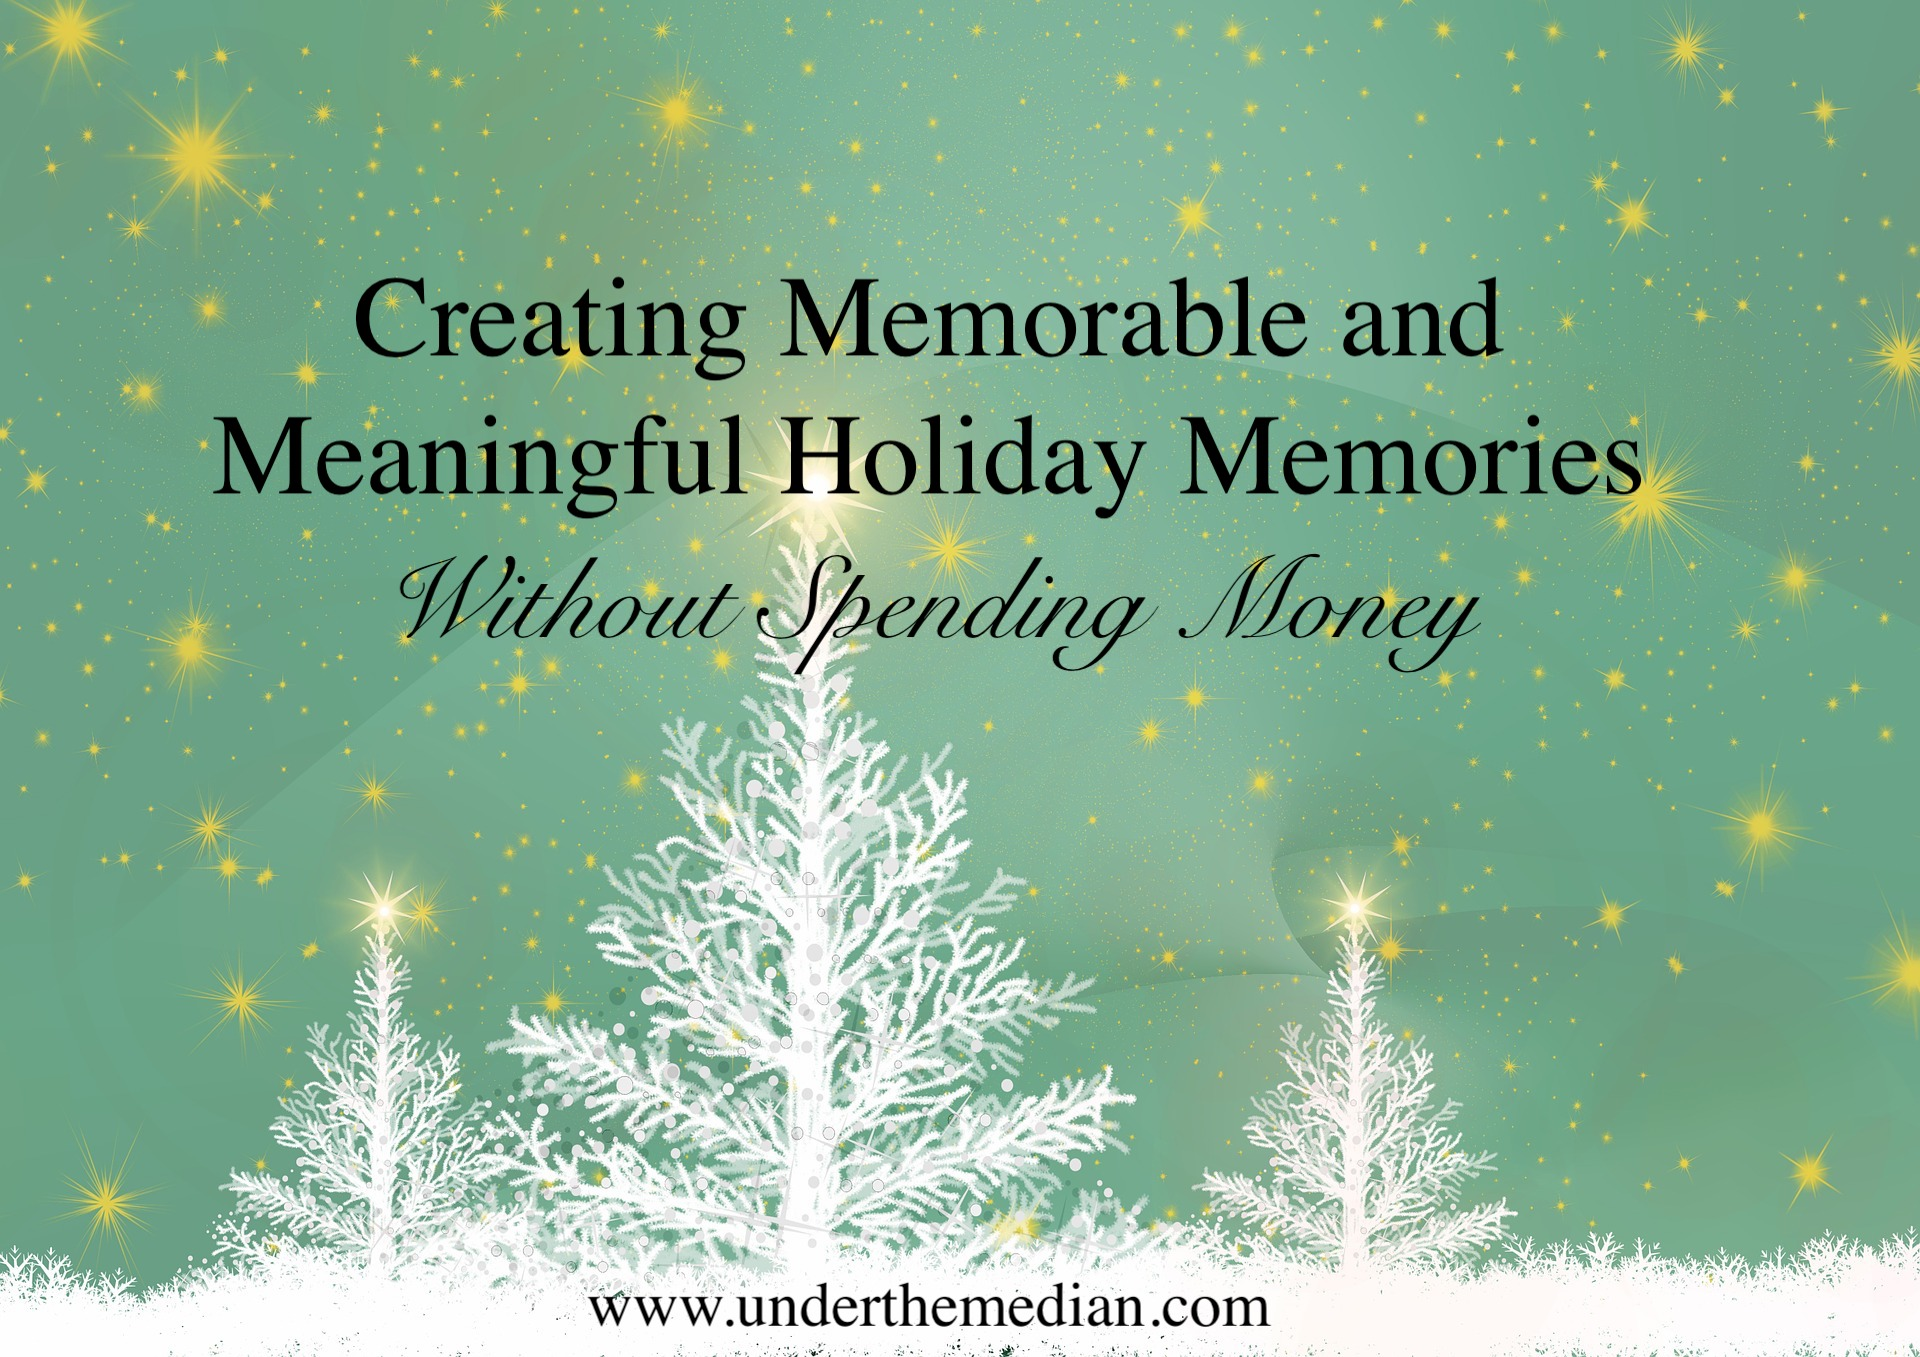 How to Make Christmas Meaningful and Memorable Without Spending Money